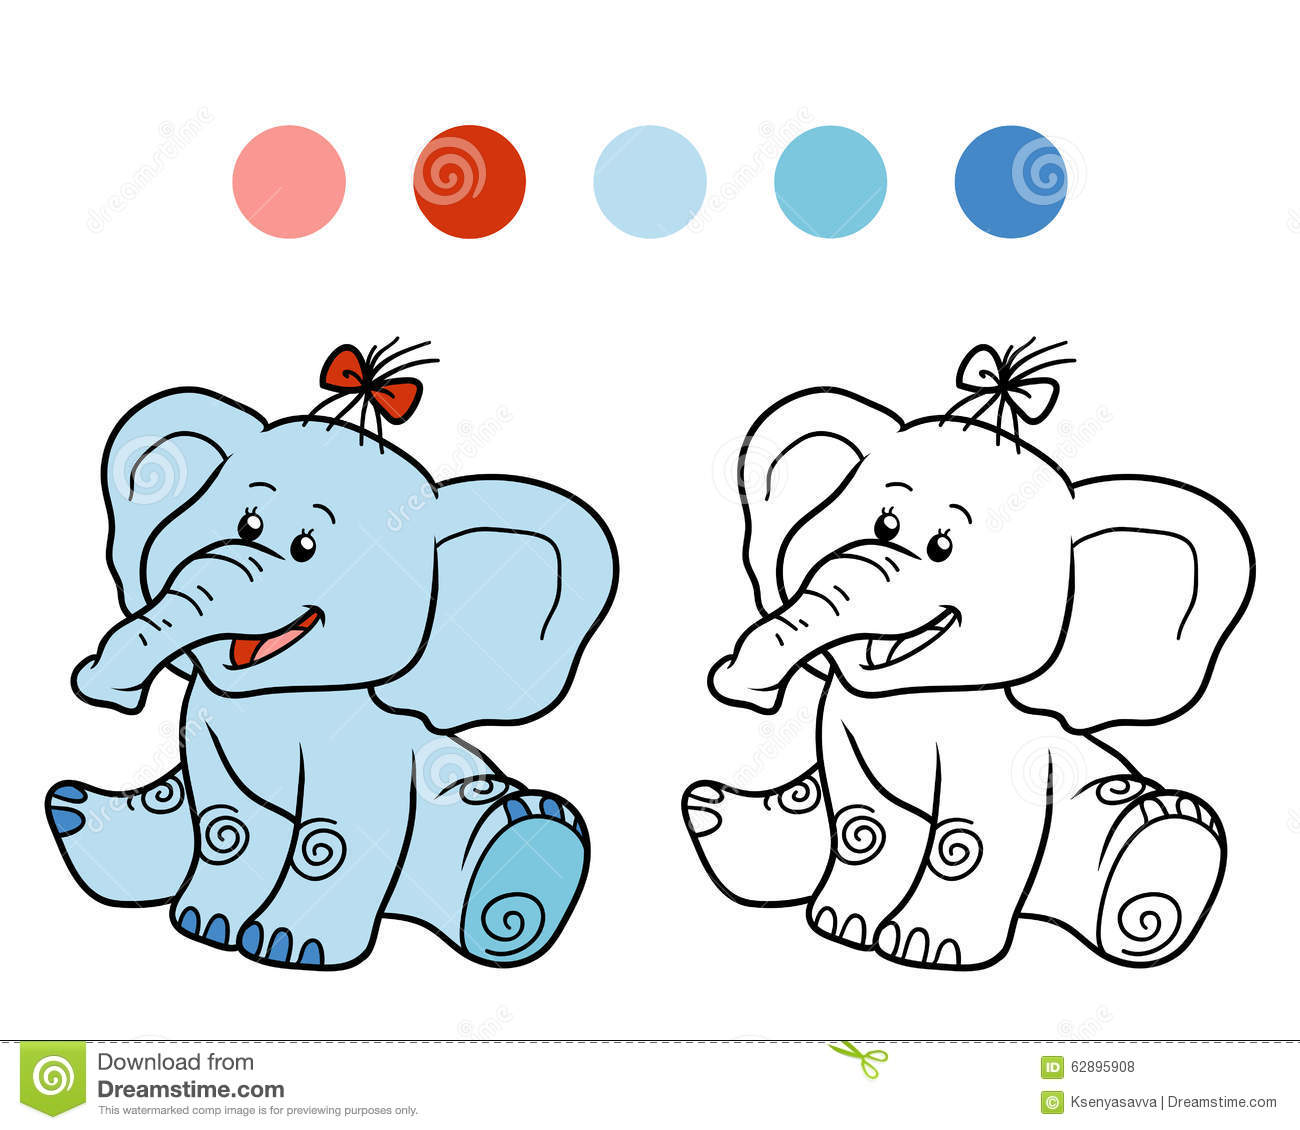 Royalty Free Vector Download Coloring Book For Children Elephant